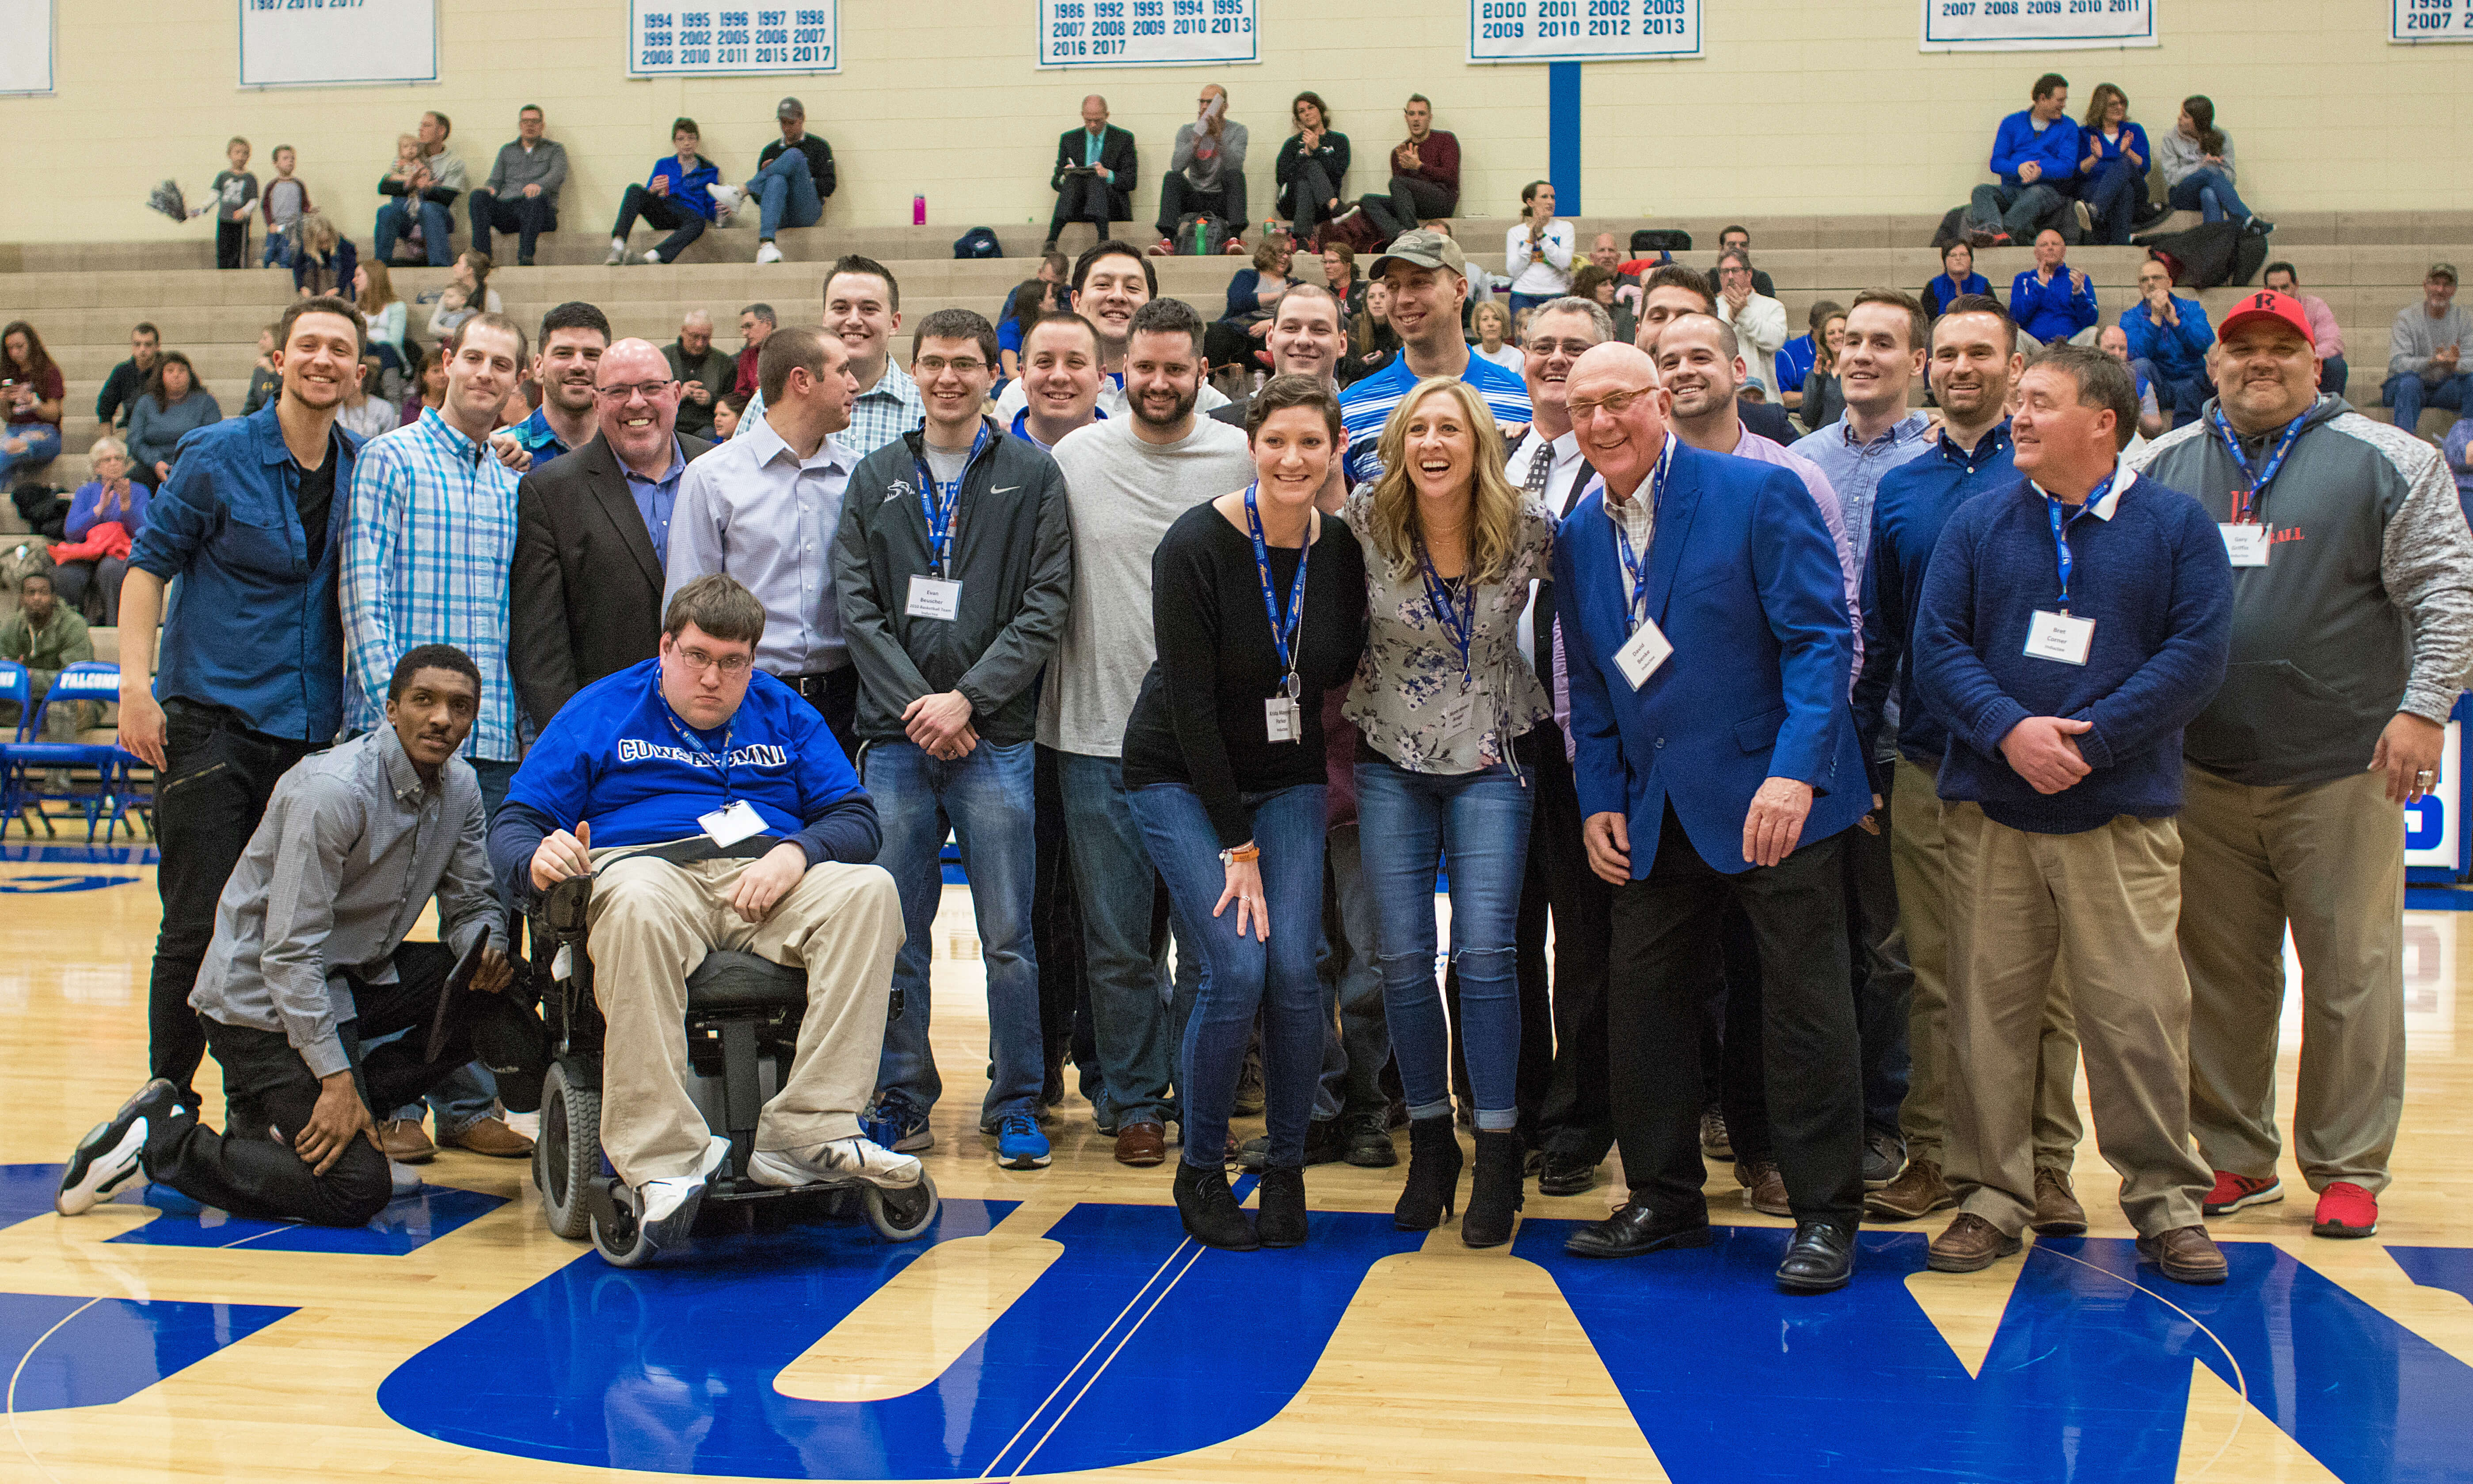 The 2017 Hall of Fame inductees were introduced Friday night during CIT.